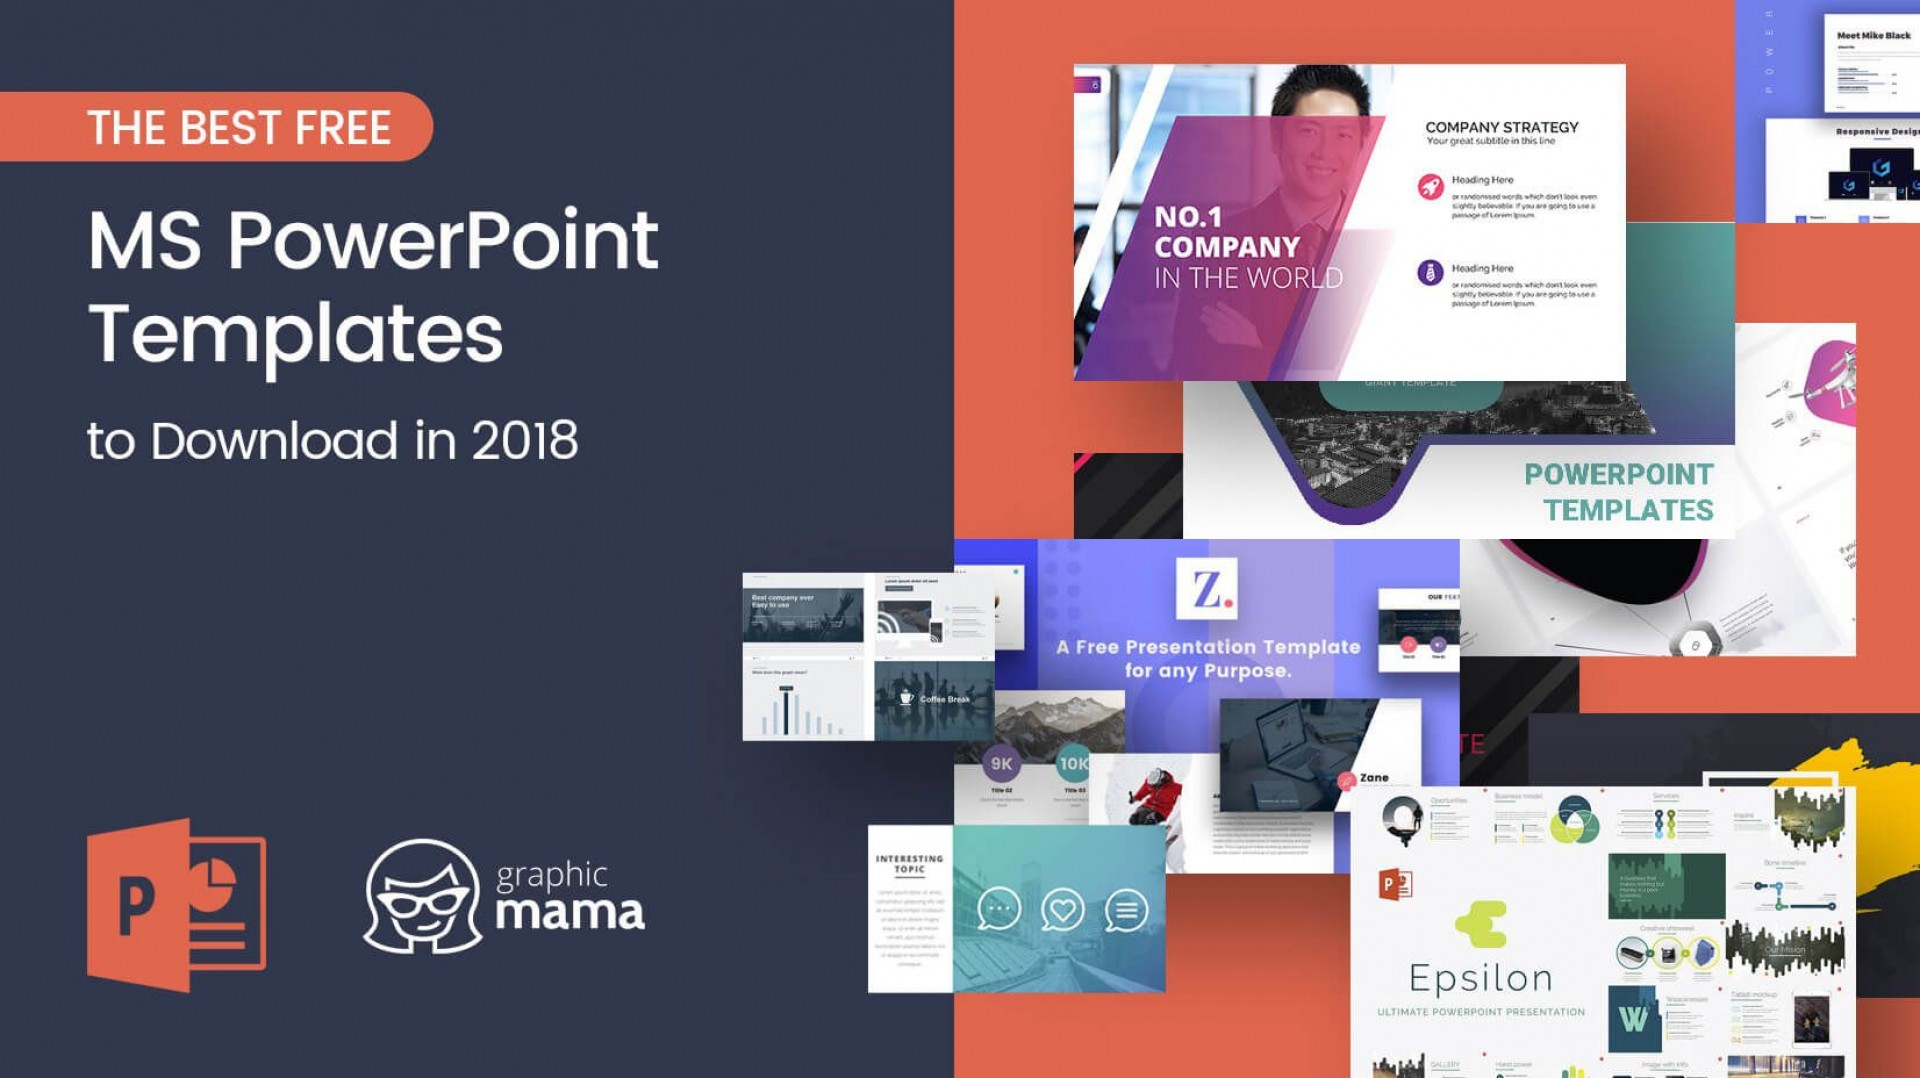 008 Awful Download Free Powerpoint Template Highest Quality  2019 Science Creative 20201920